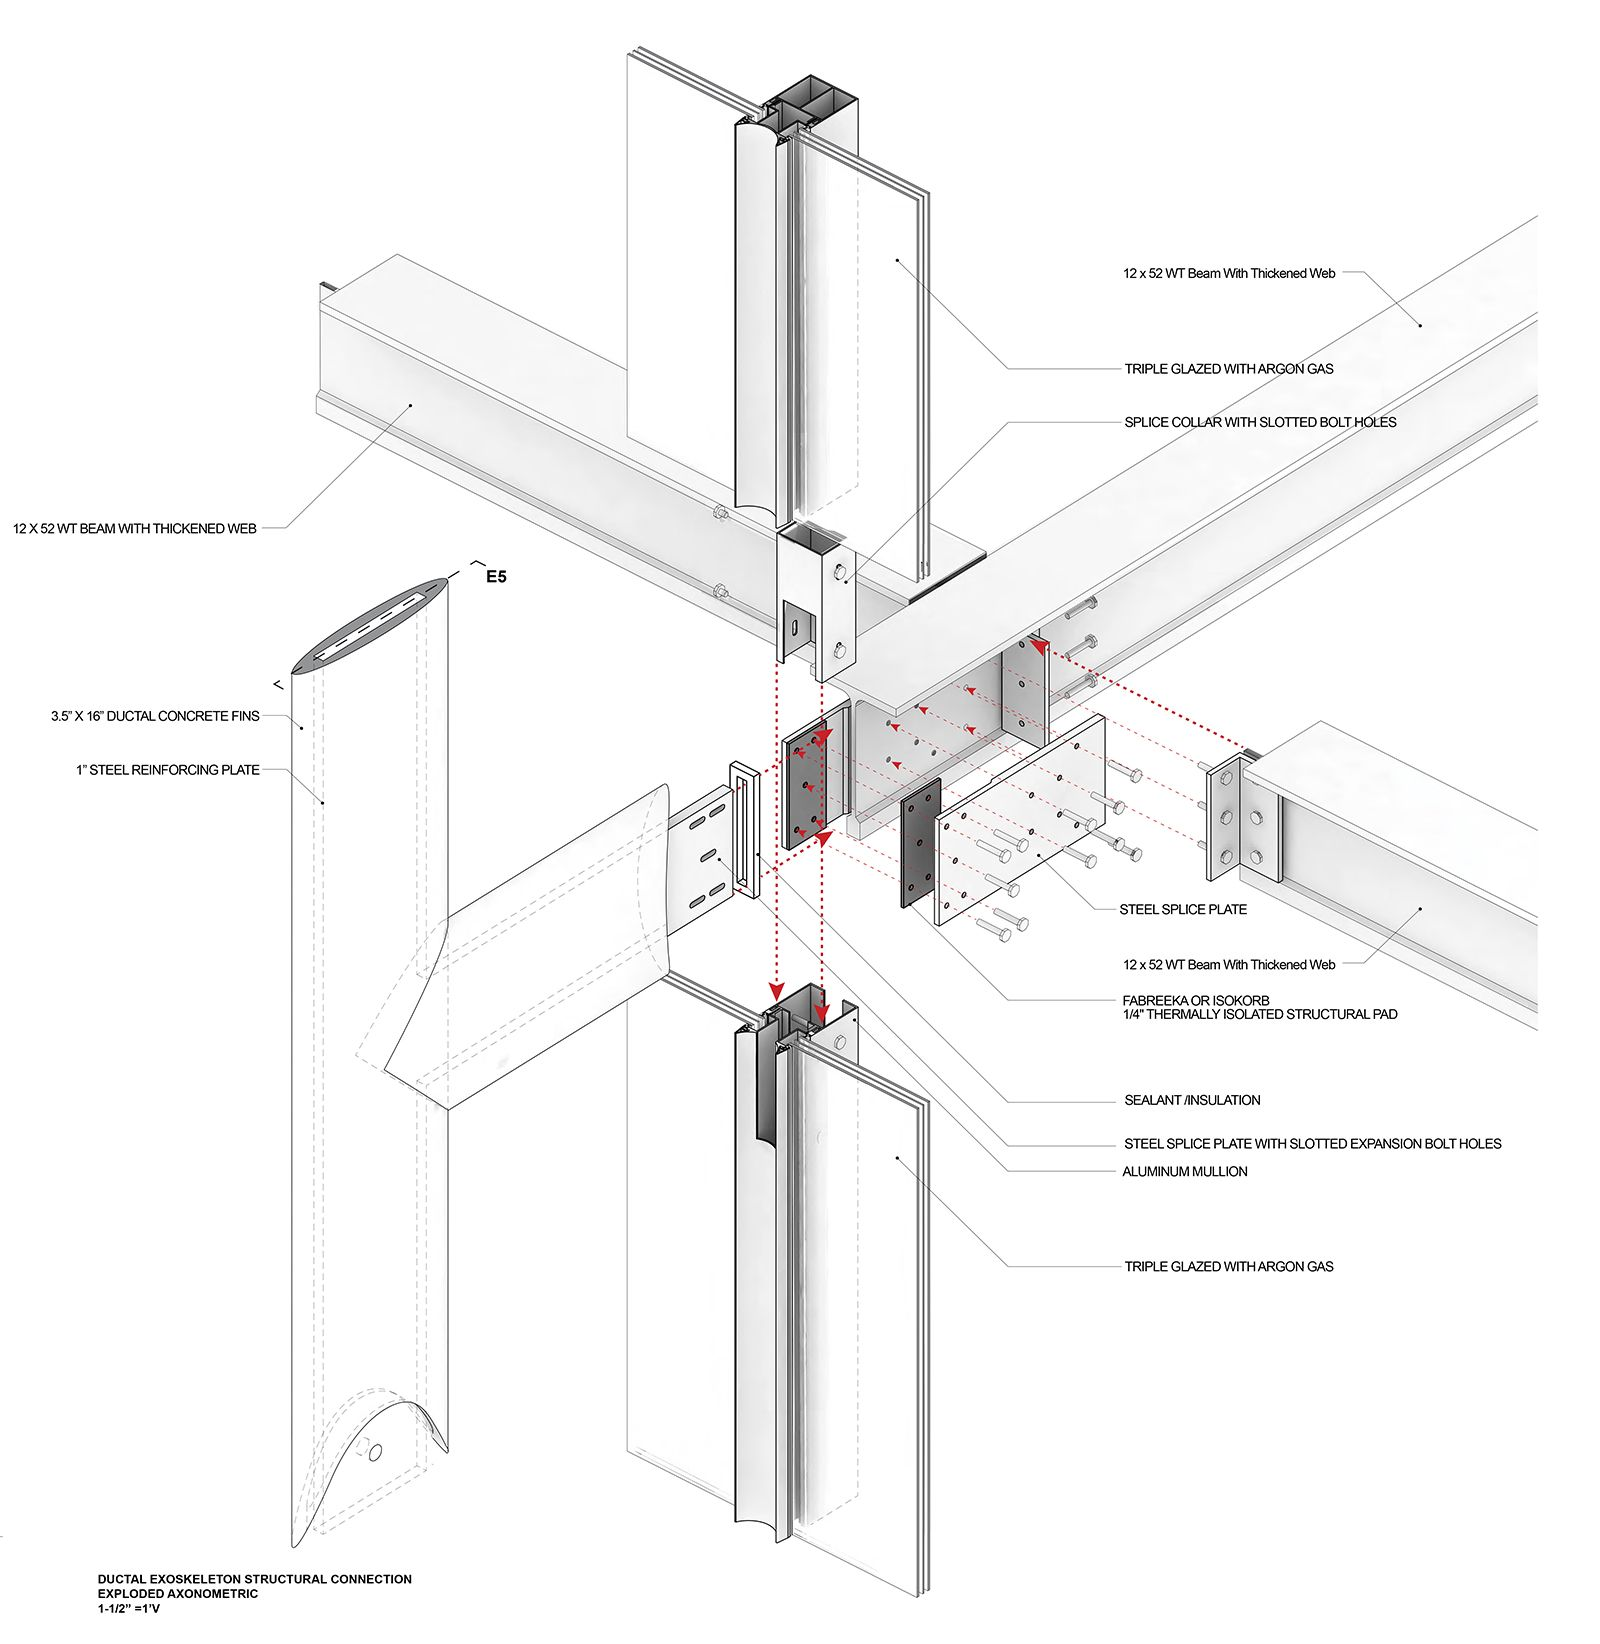 Architectural Technology 5 Columbia Abstract Construction Details Architecture Facade Design Structure Architecture